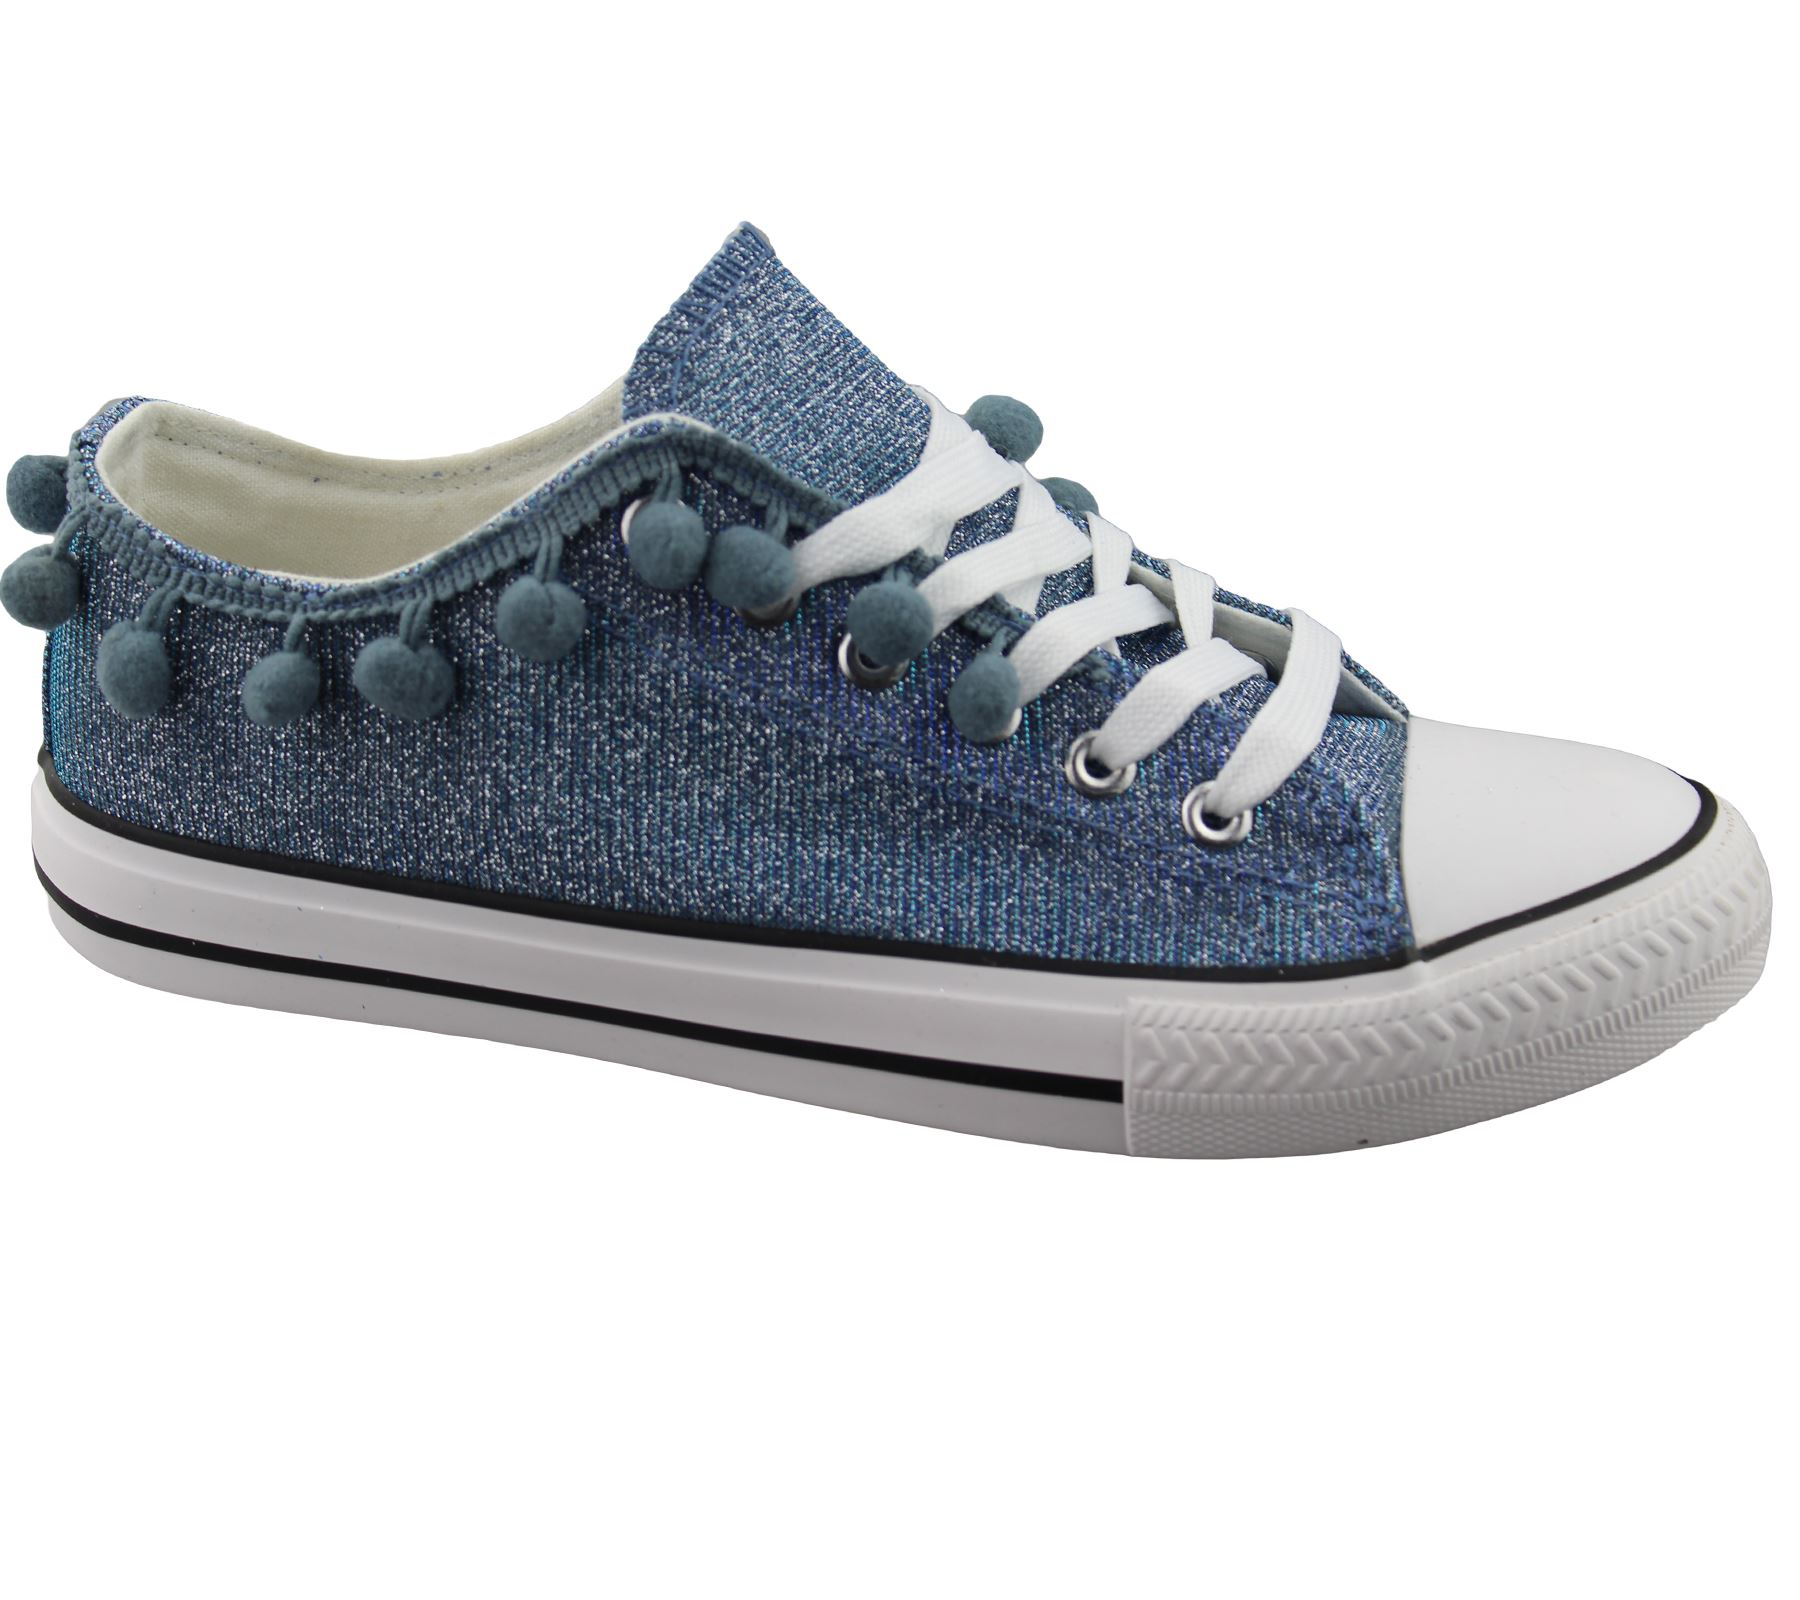 Womens-Sneakers-Flat-Pumps-Ladies-Glittered-Summer-Plimsole-Canvas-Shoes thumbnail 27